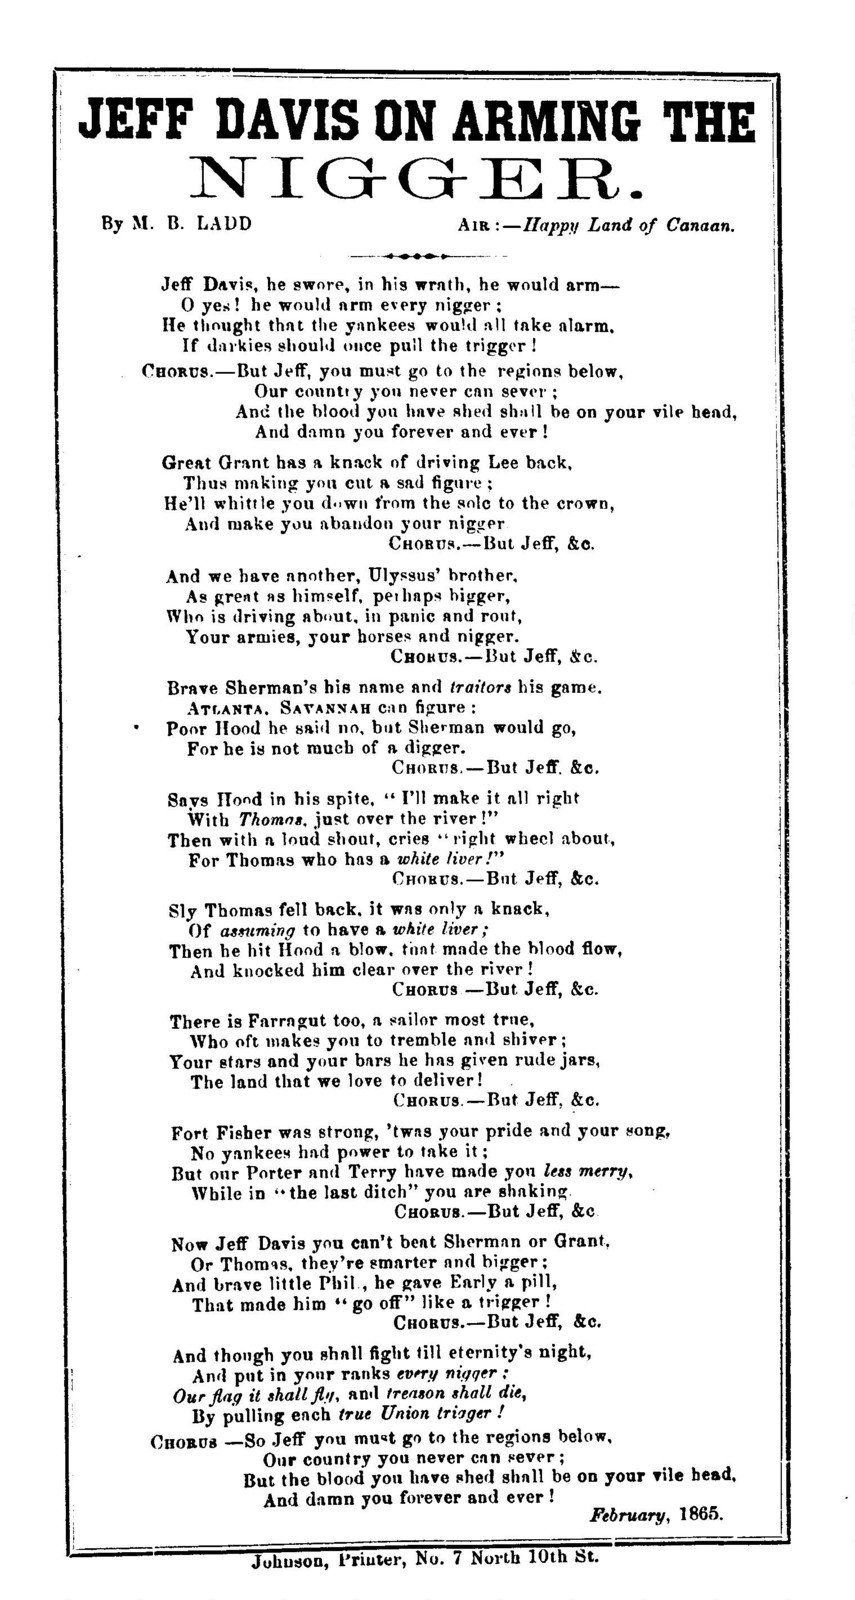 Jeff Davis on arming the nigger. By M. B. Ladd. Air--Happy land of Canaan. Johnson, printer, No. 7 North 10th Street. February, 1865